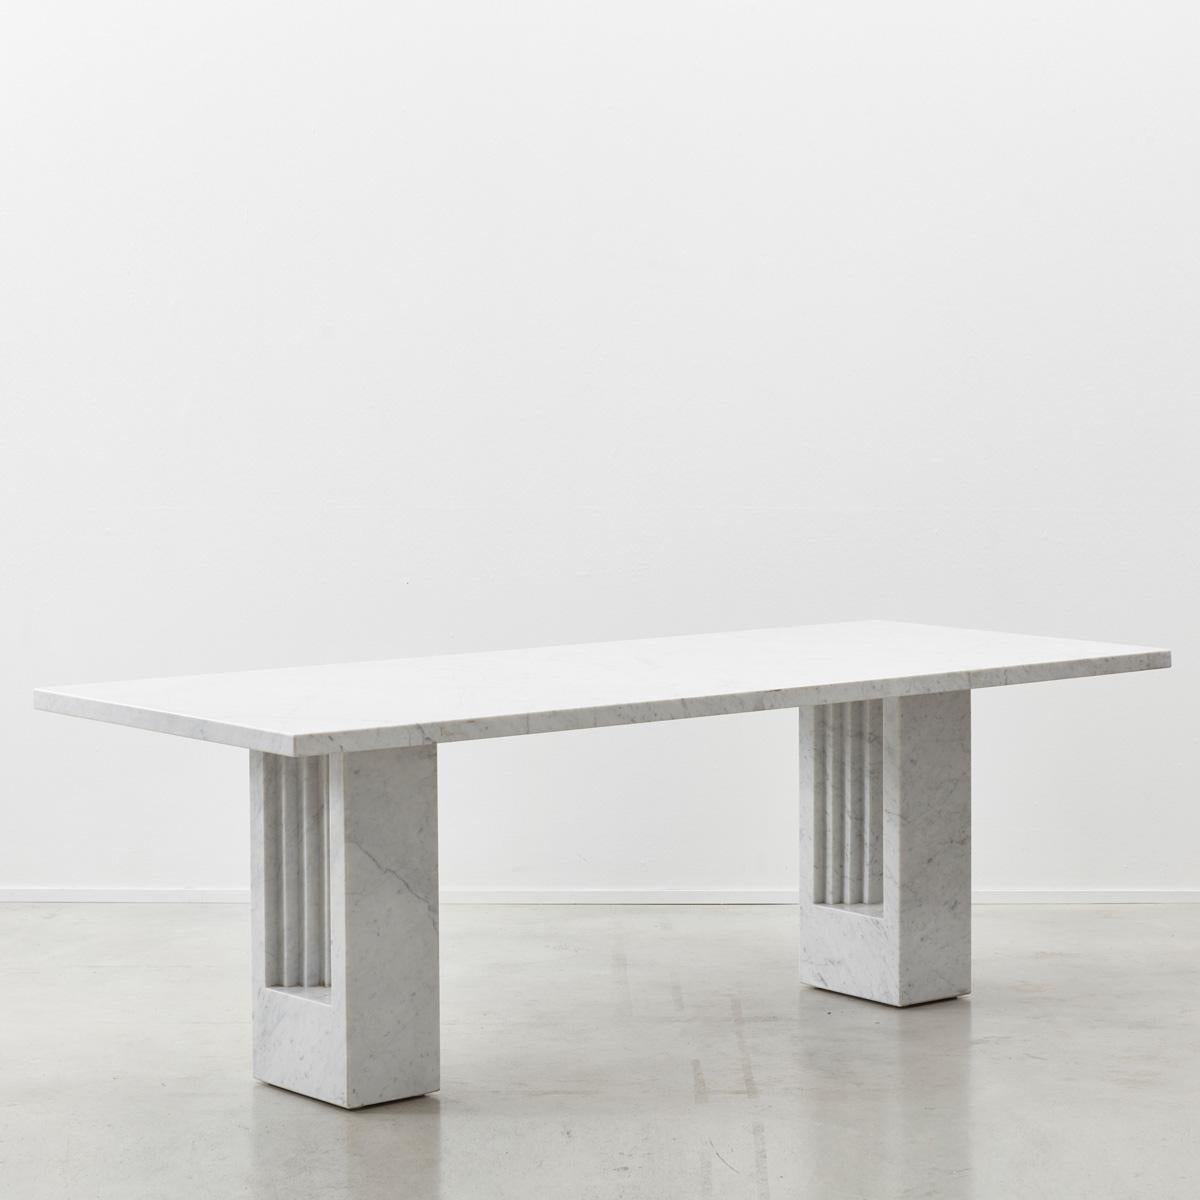 F110_Carlo_Scarpa_and_Marcel_Breuer_Delfi_table_master